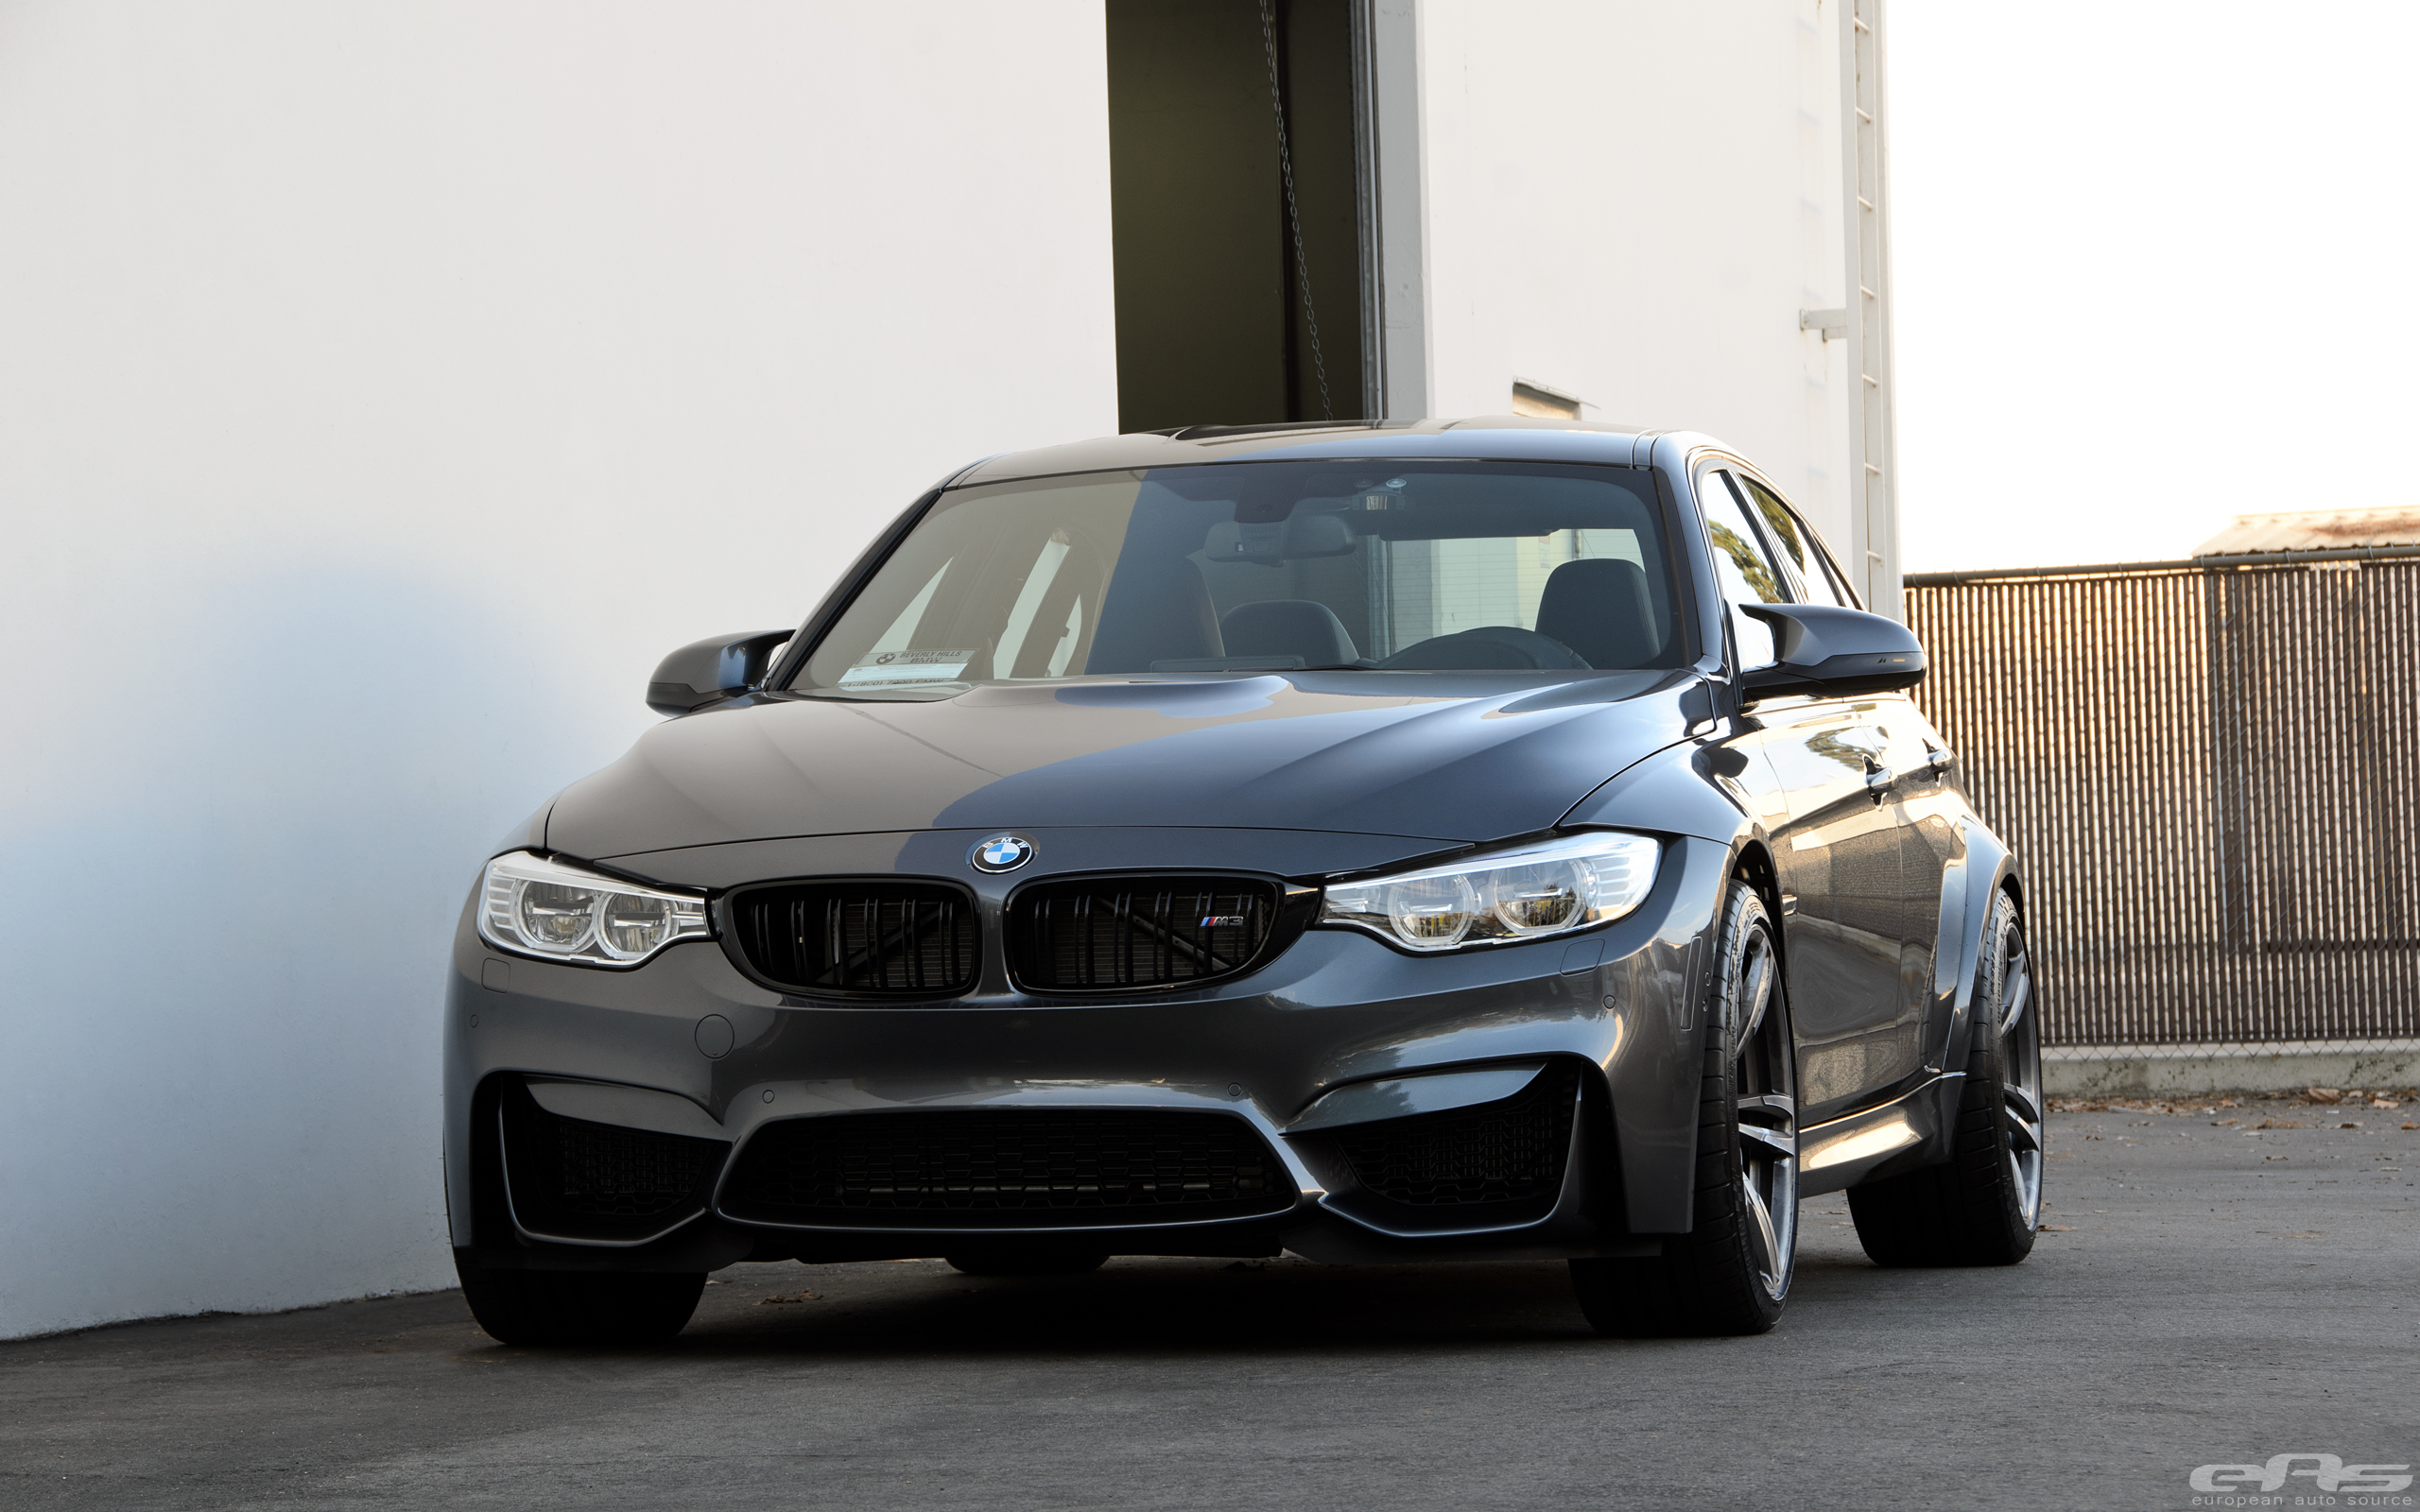 Mineral Gray Bmw F80 M3 With Spacers Installed